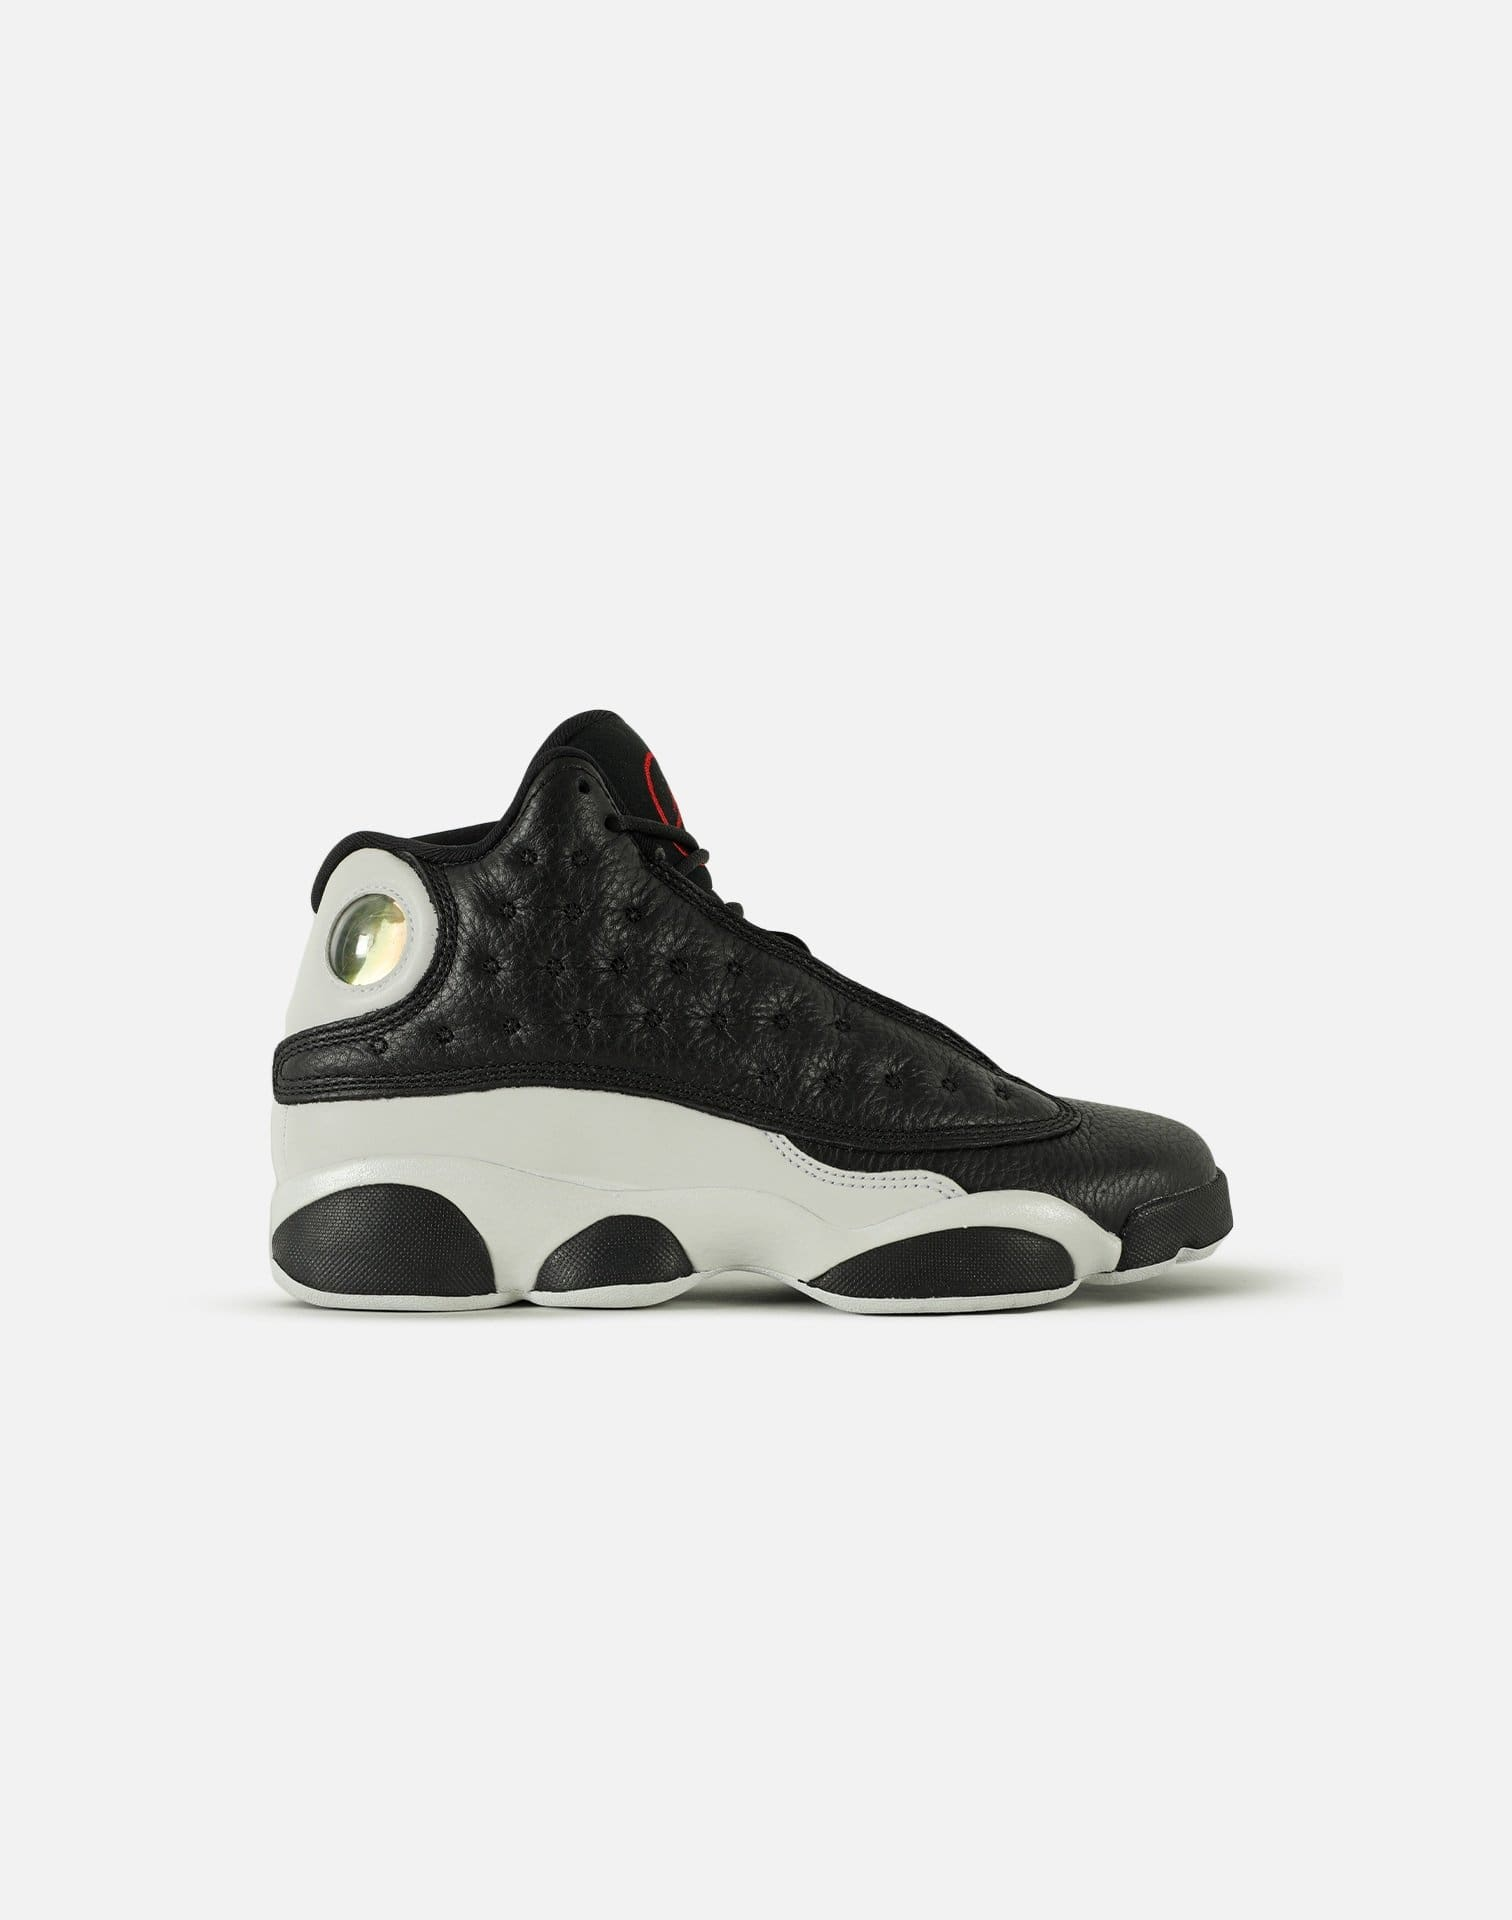 Jordan AIR JORDAN RETRO 13 'REVERSE HE GOT GAME' GRADE-SCHOOL